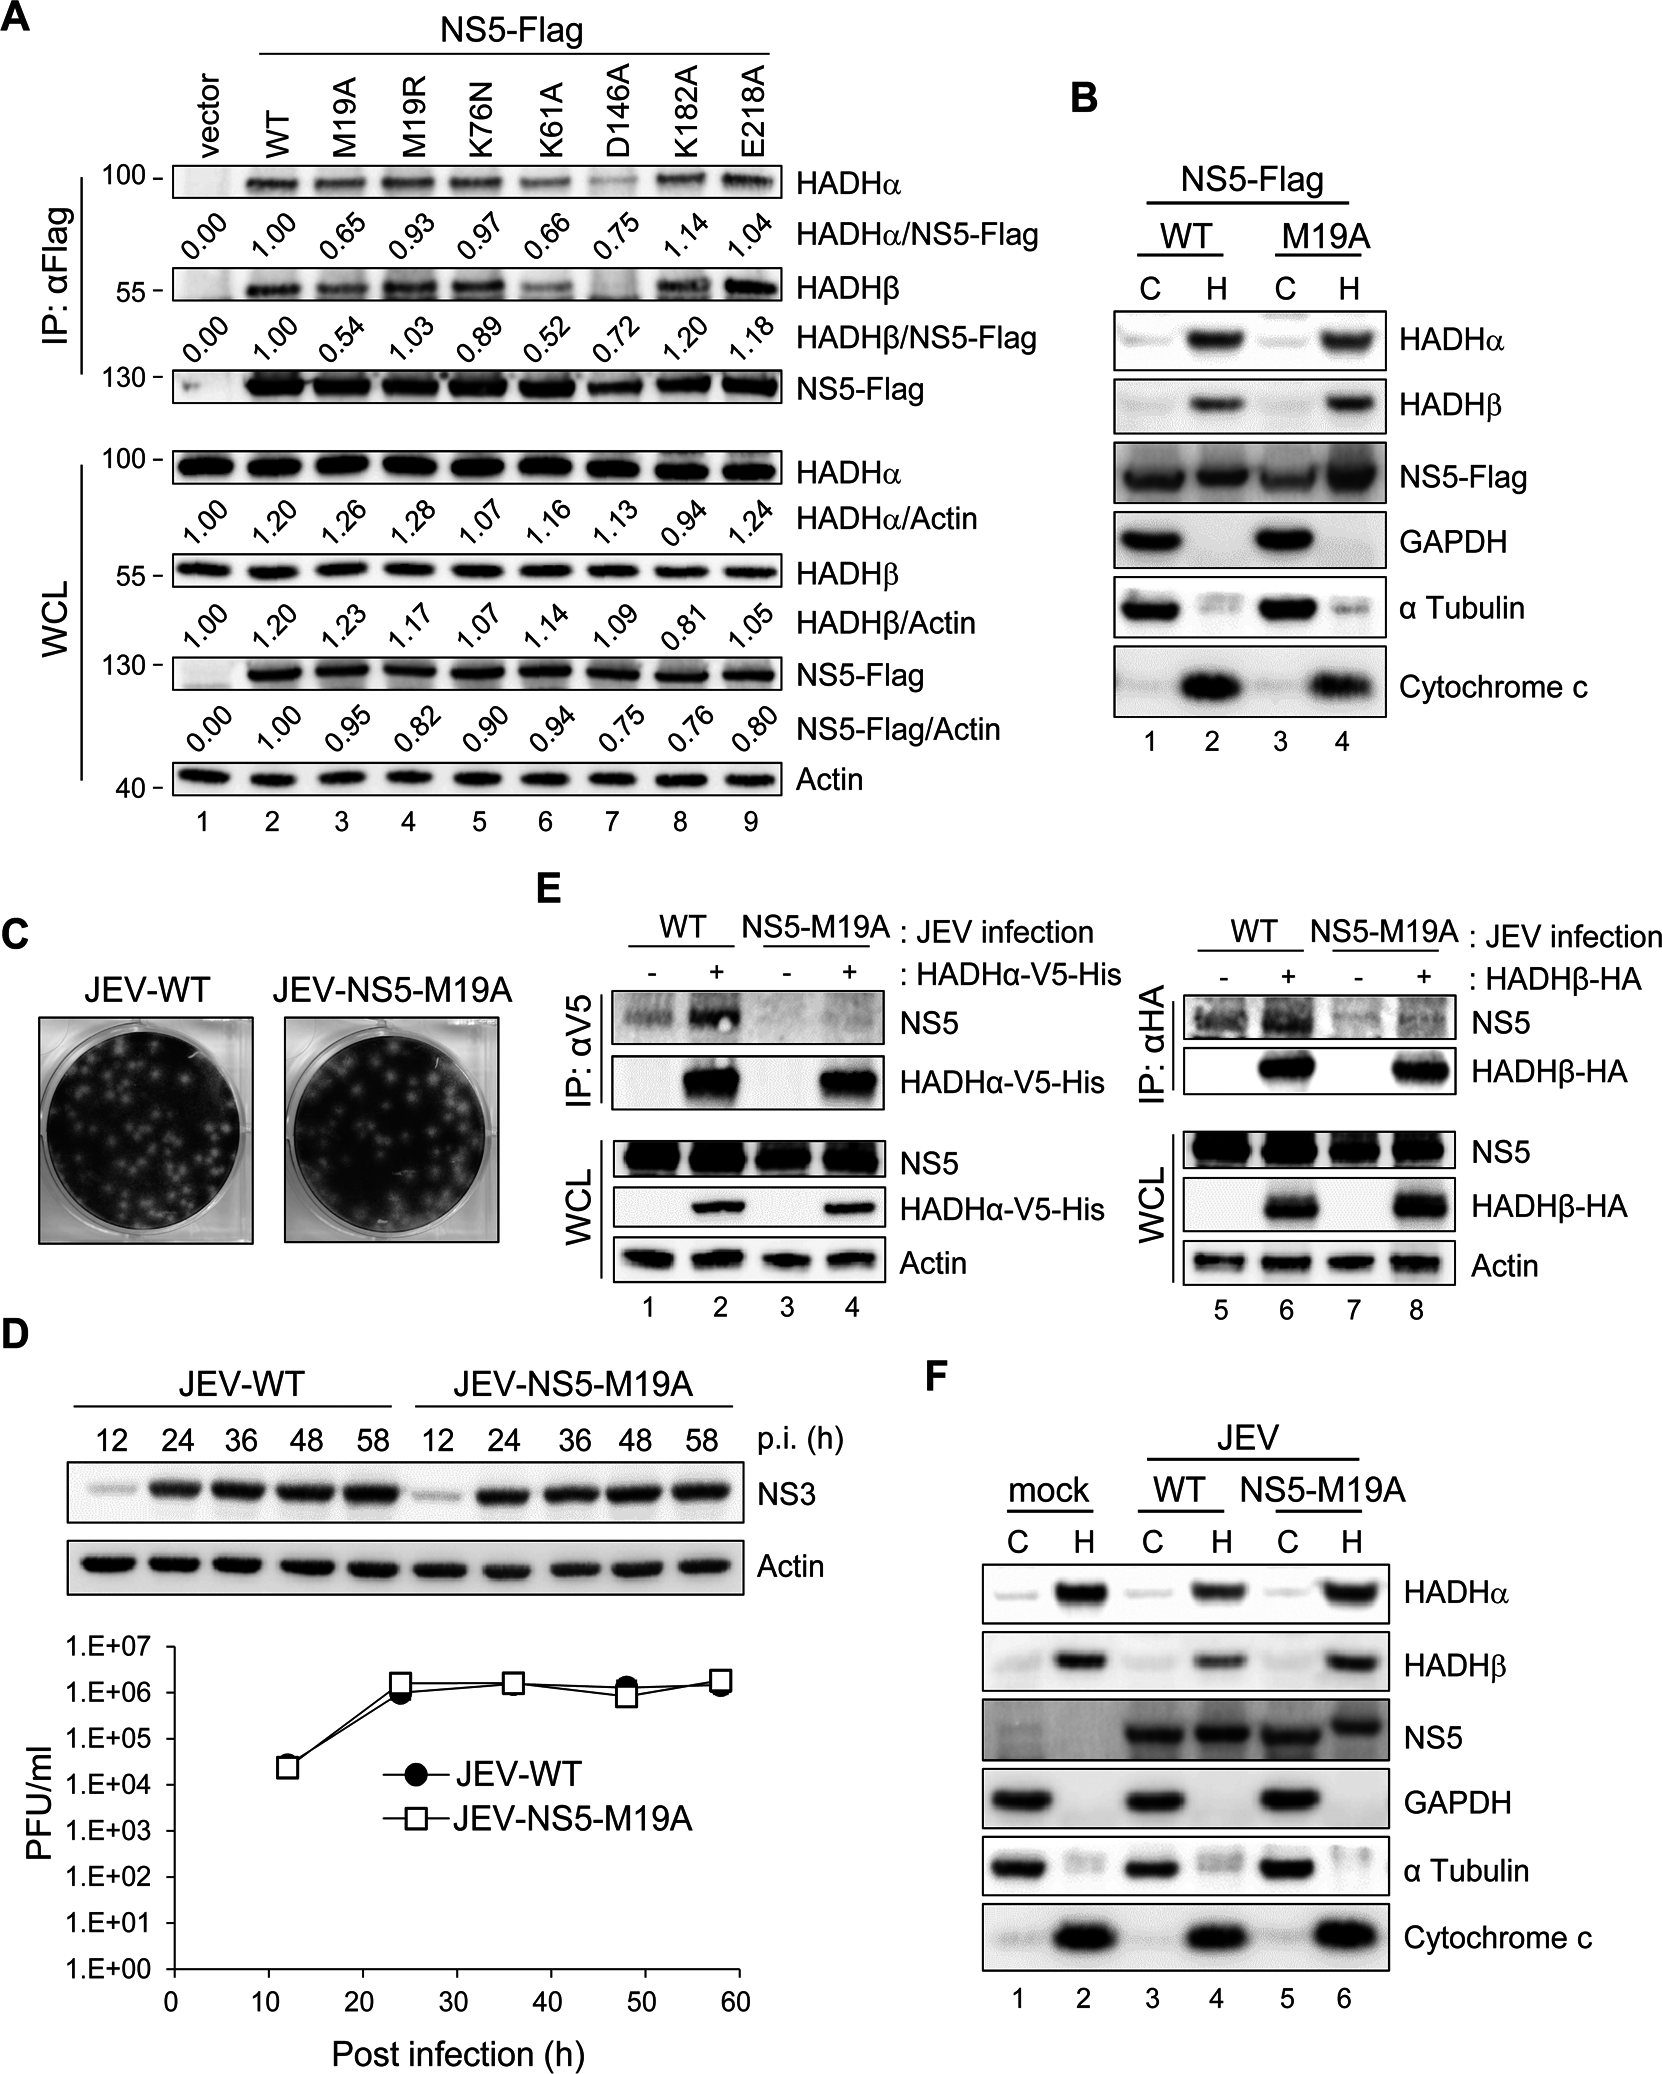 NS5 with mutation on residue 19 (M19A) showed reduced binding ability with MTP.